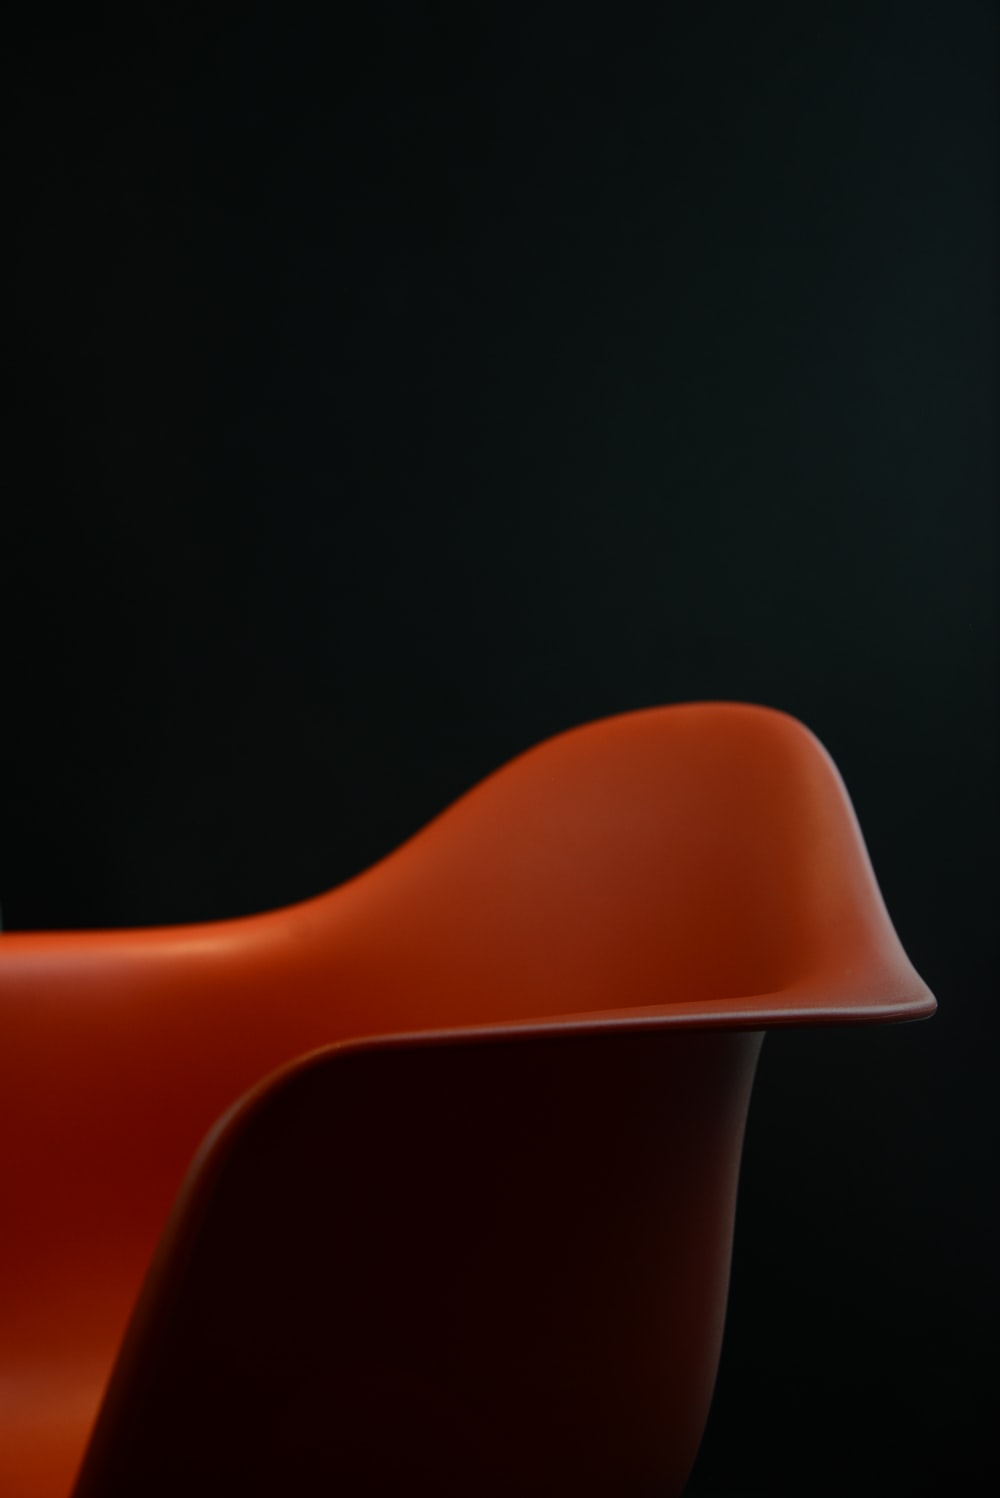 red plastic chair on black background